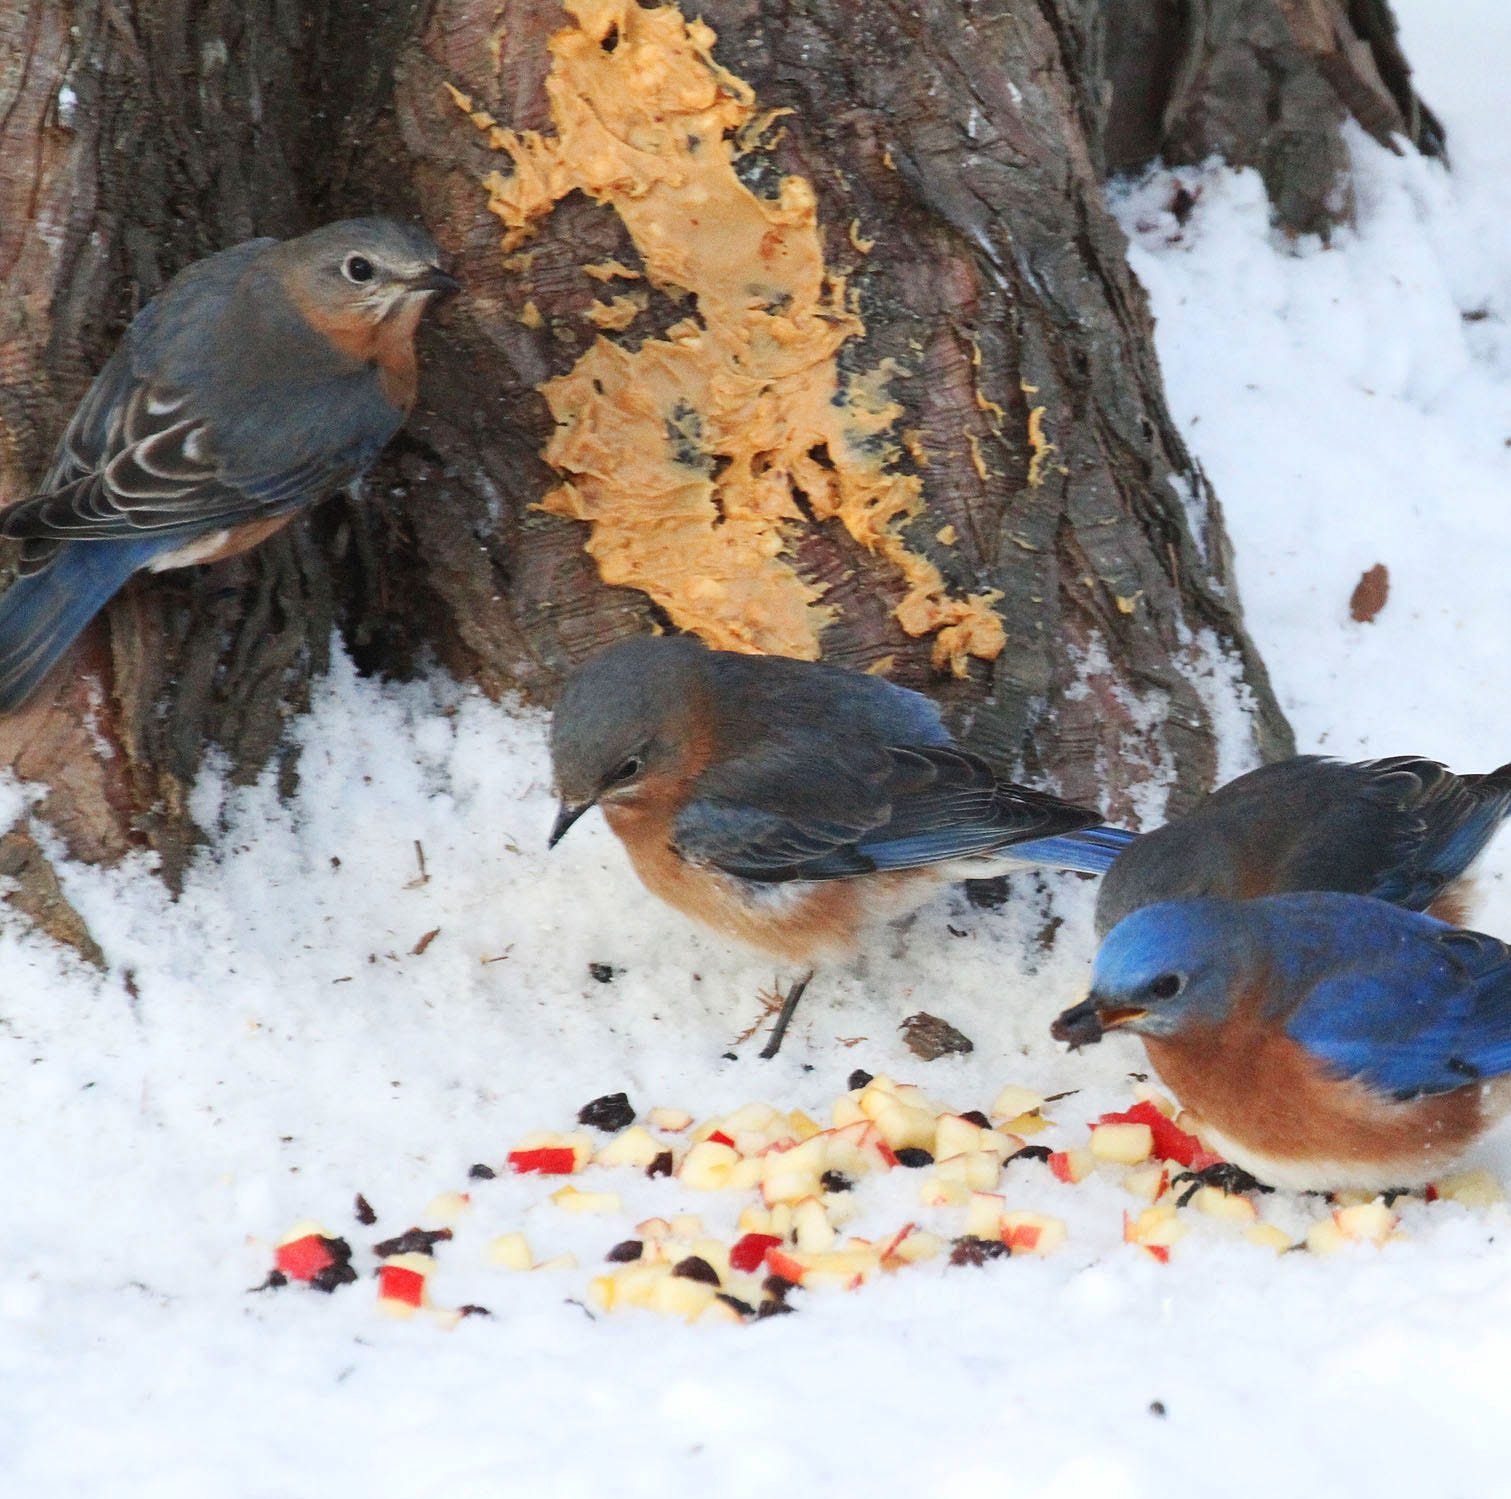 For the Birds: What do you feed your bluebirds